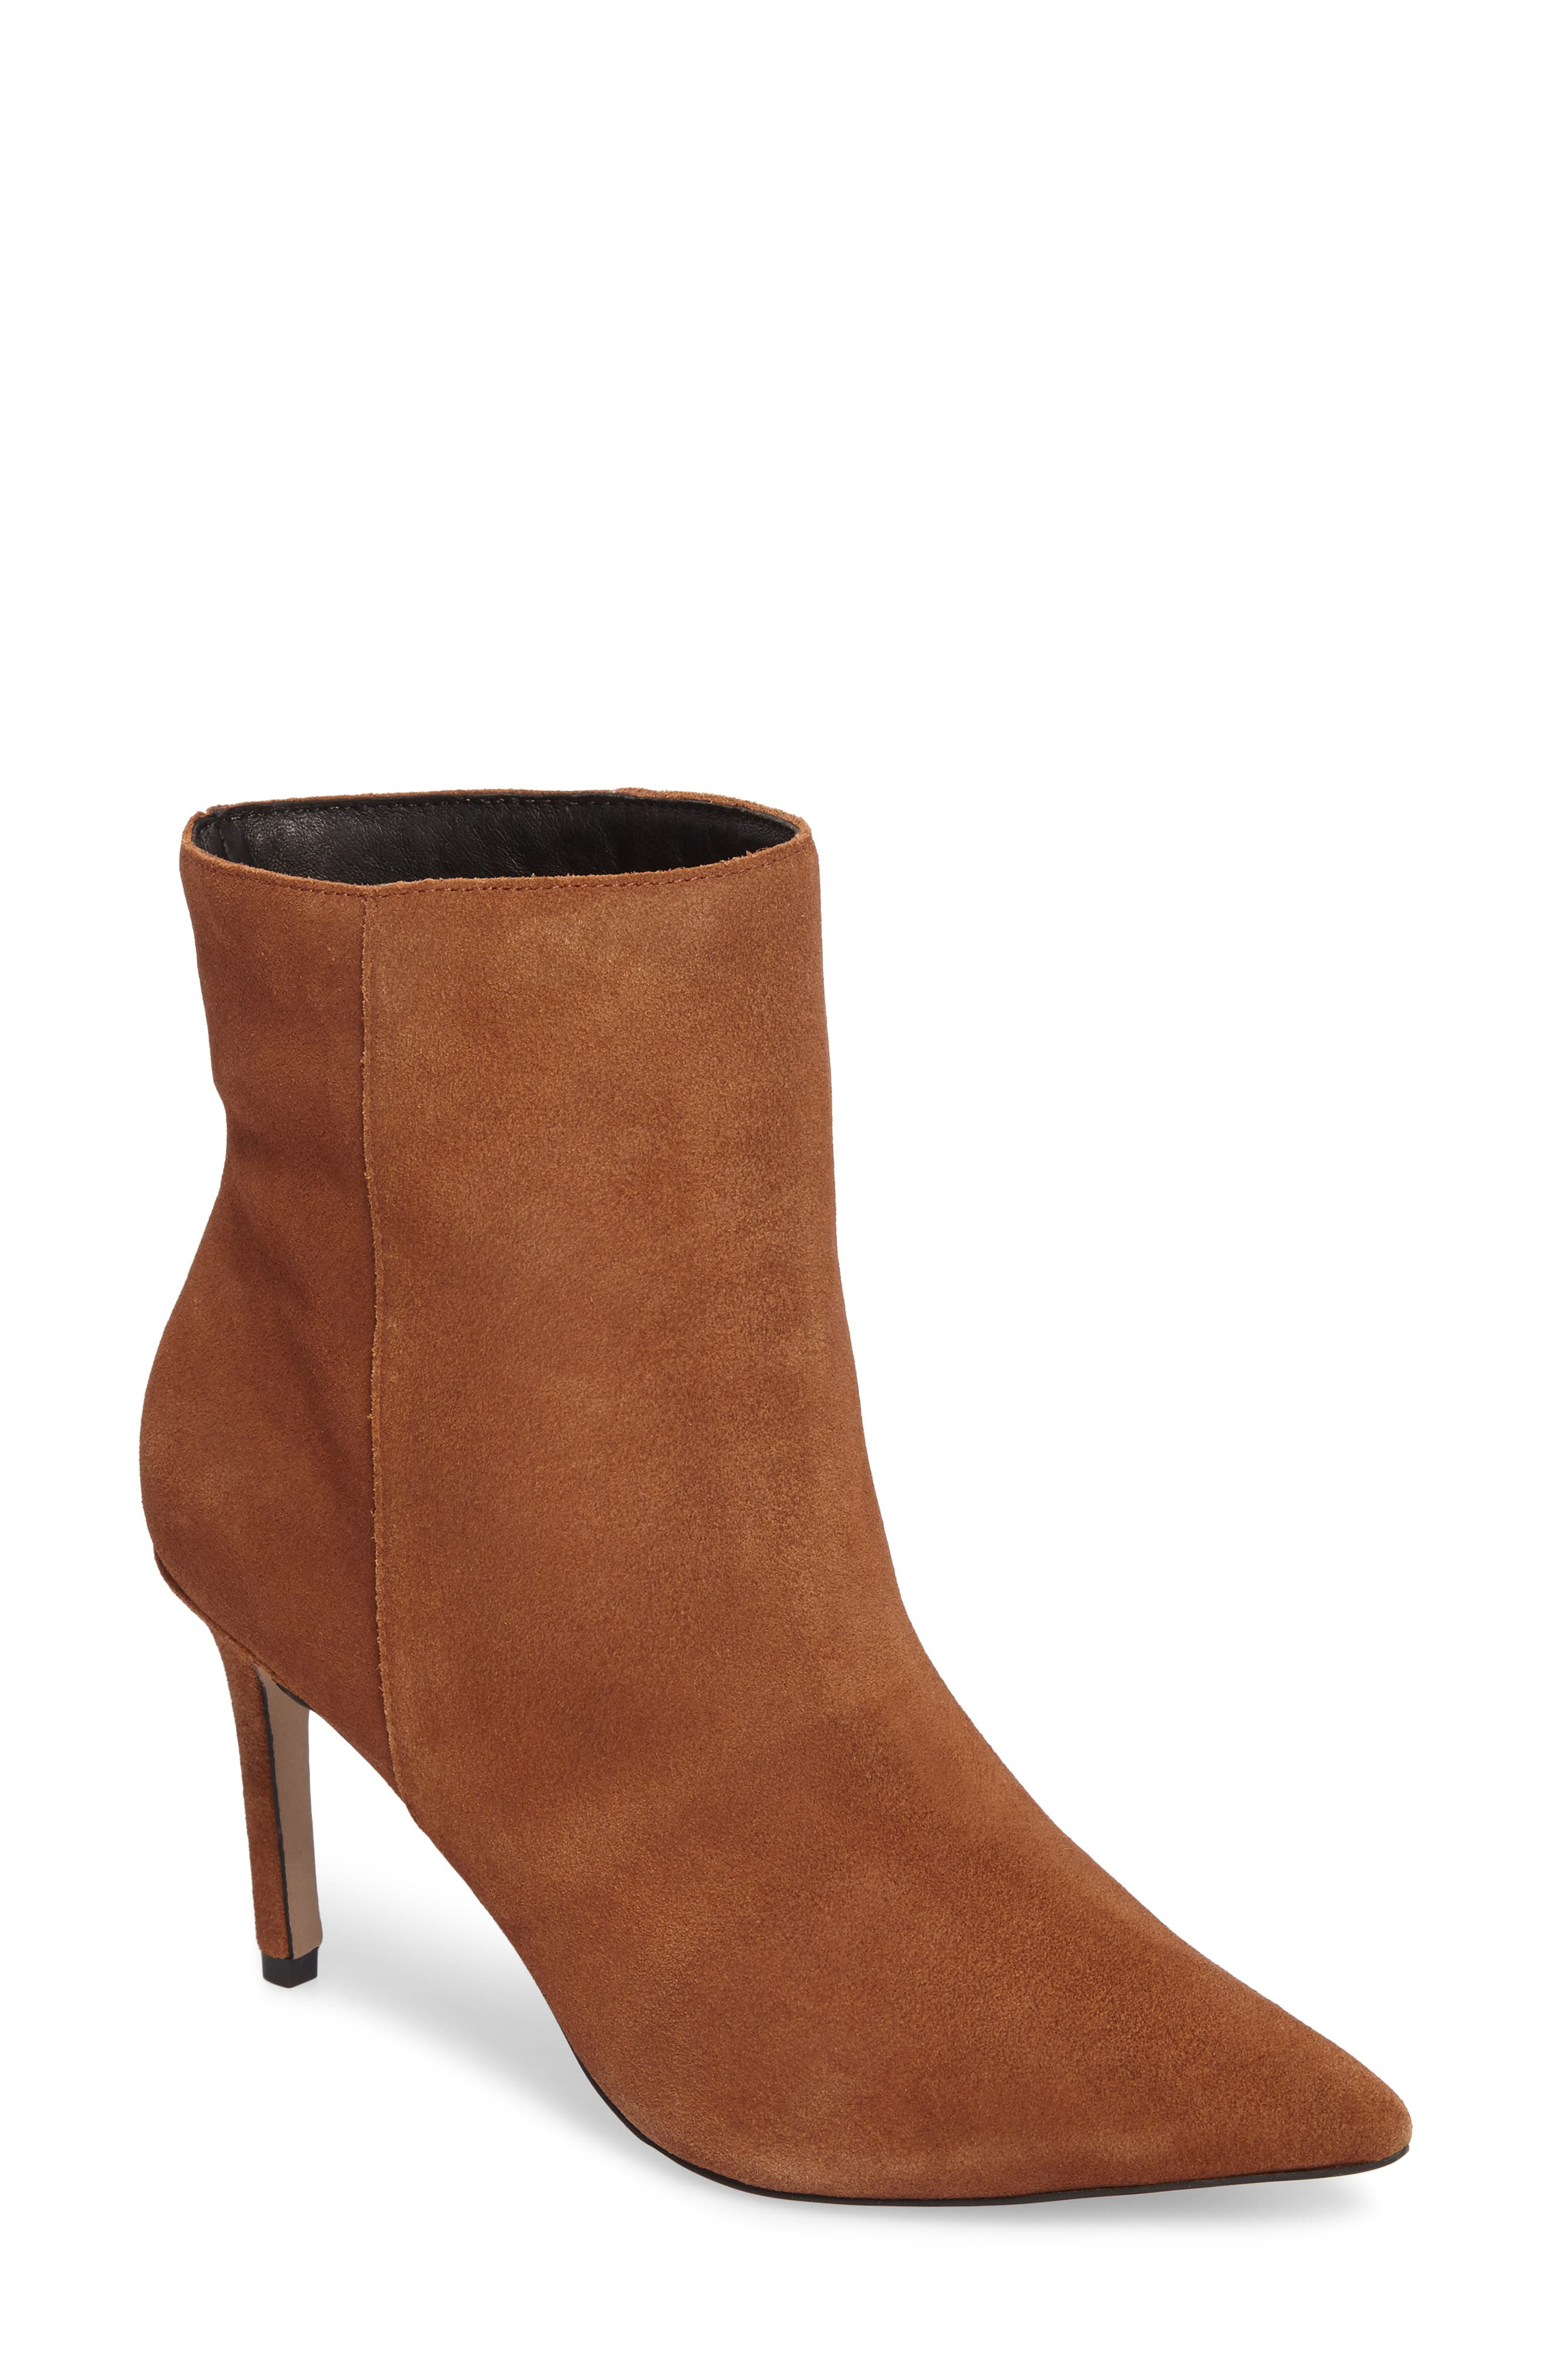 Holiday Stiletto Bootie,                         Main,                         color, Tan